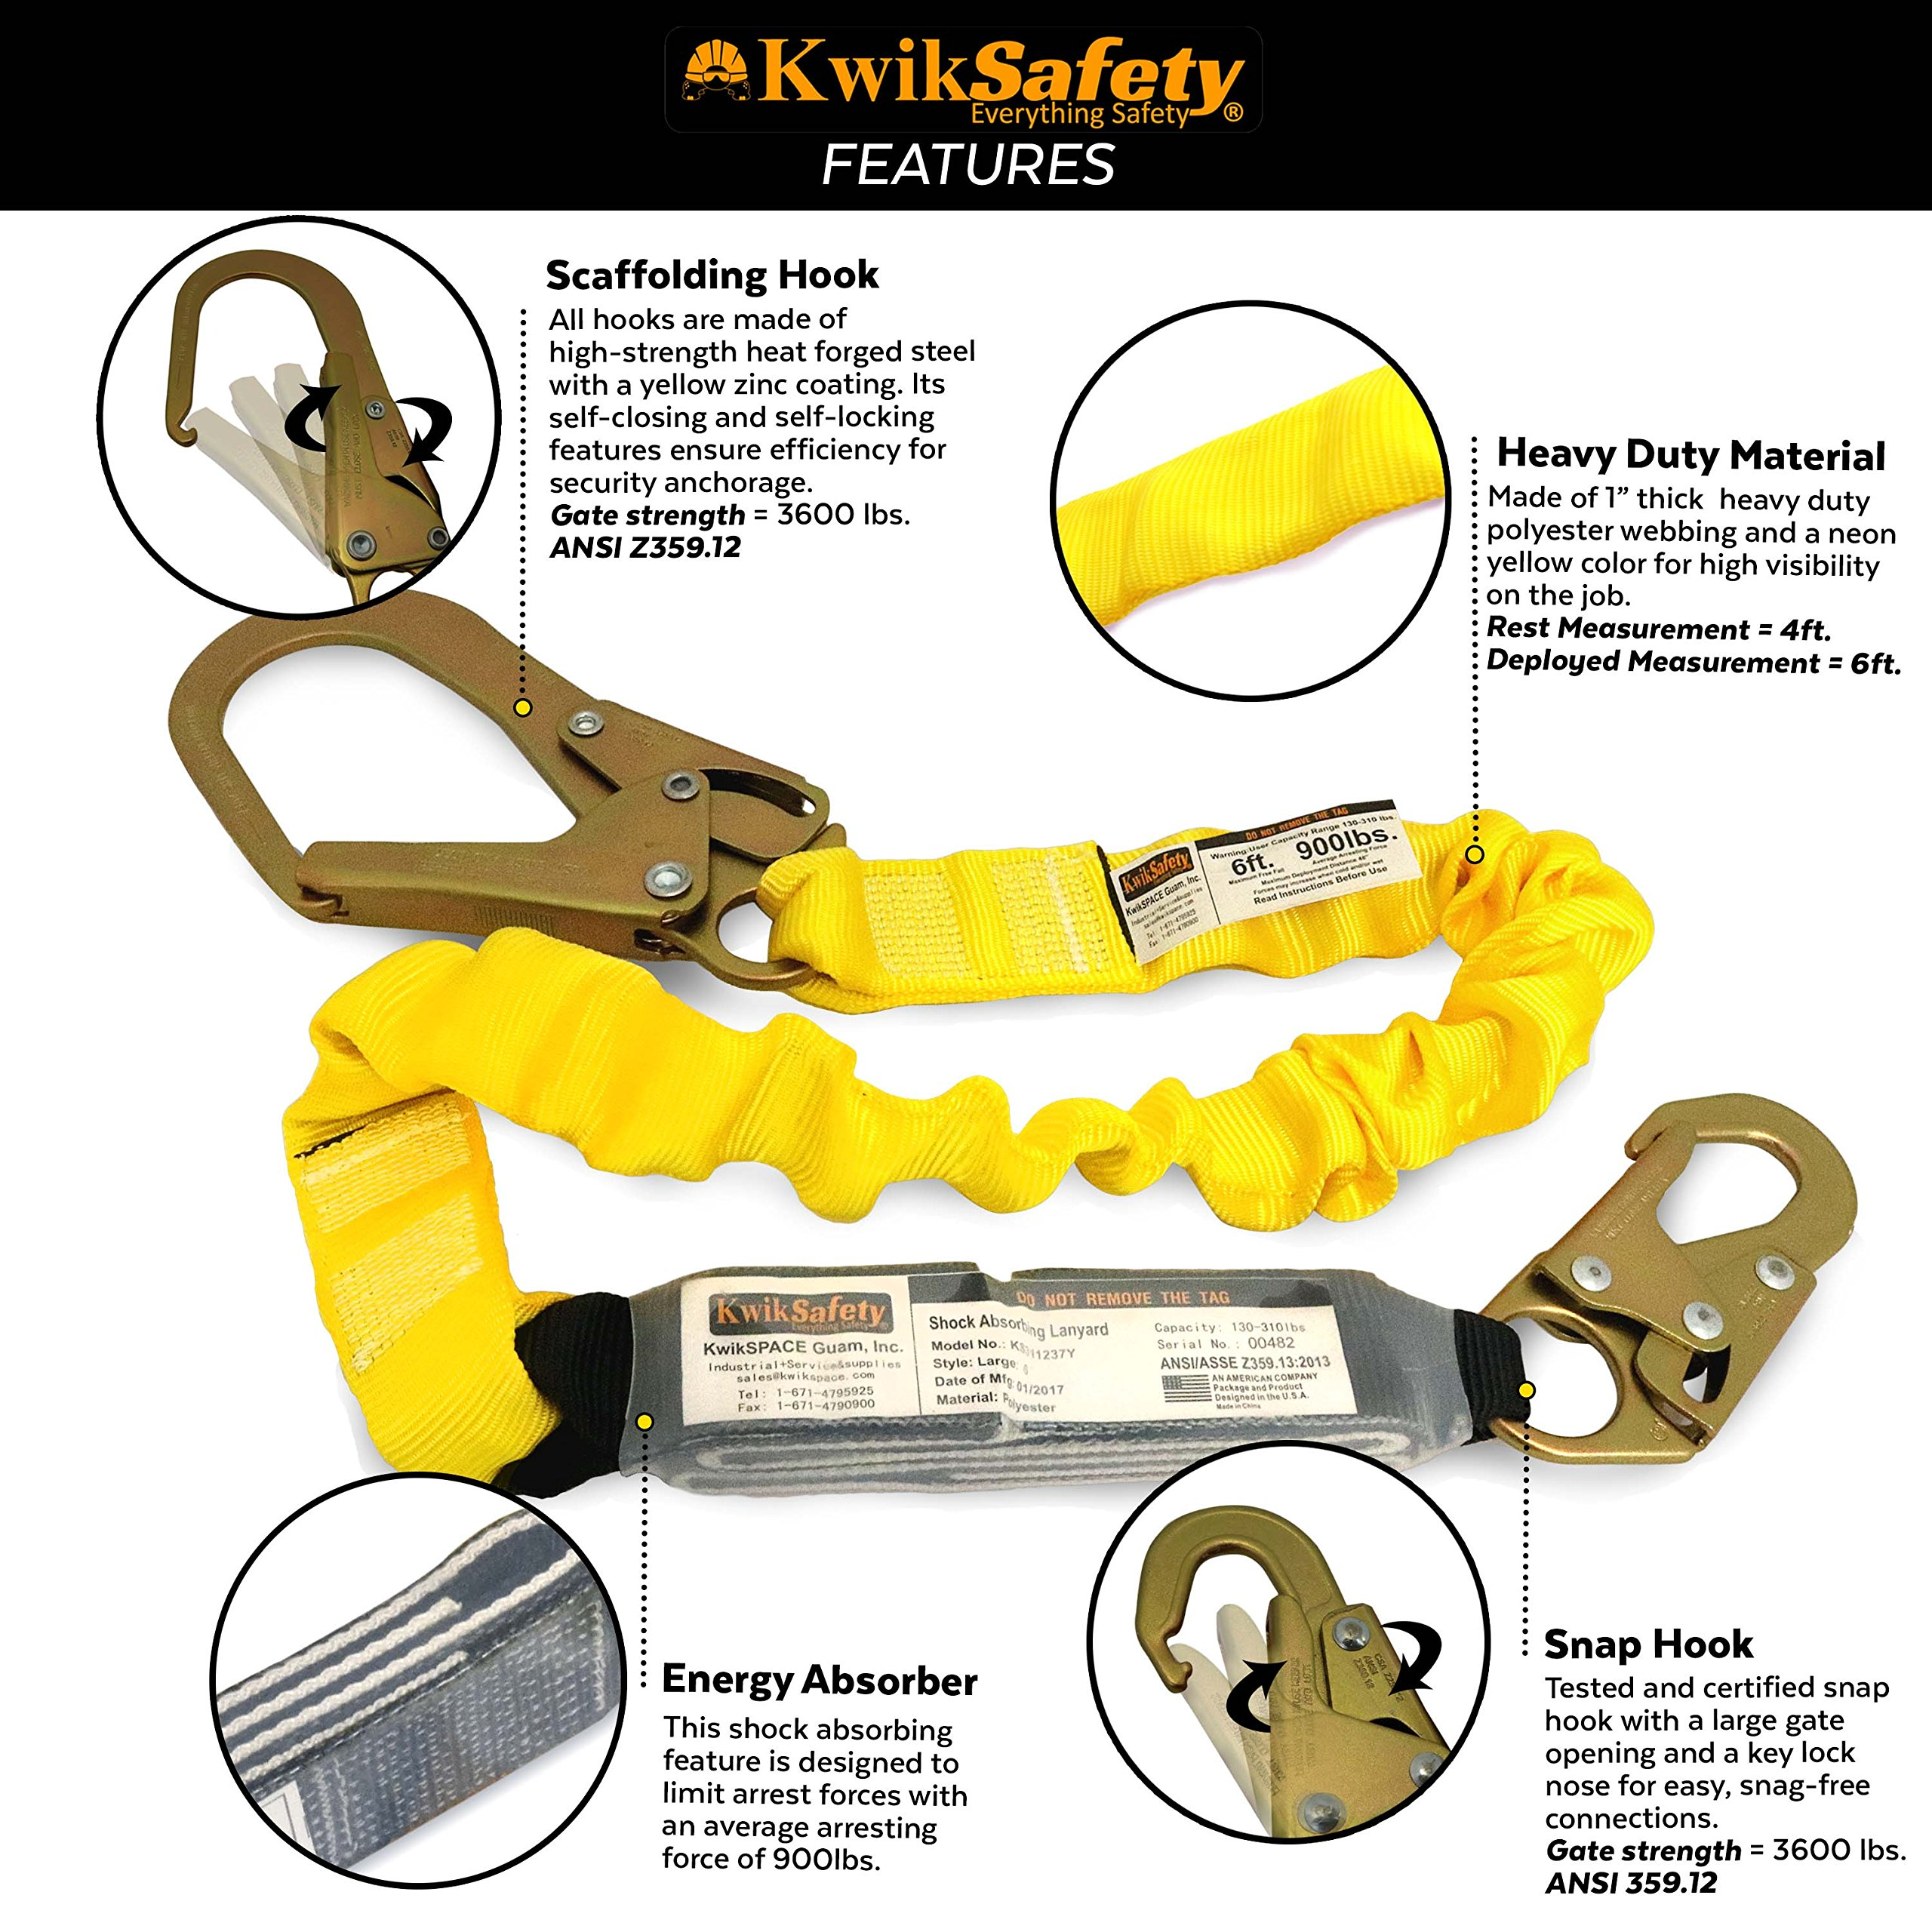 KwikSafety BOA | Single Leg 6ft Tubular Stretch Safety Lanyard | OSHA Approved ANSI Compliant Fall Protection | EXTERNAL Shock Absorber | Construction Arborist Roofing | Snap & Rebar Hook Connectors by KwikSafety (Image #4)